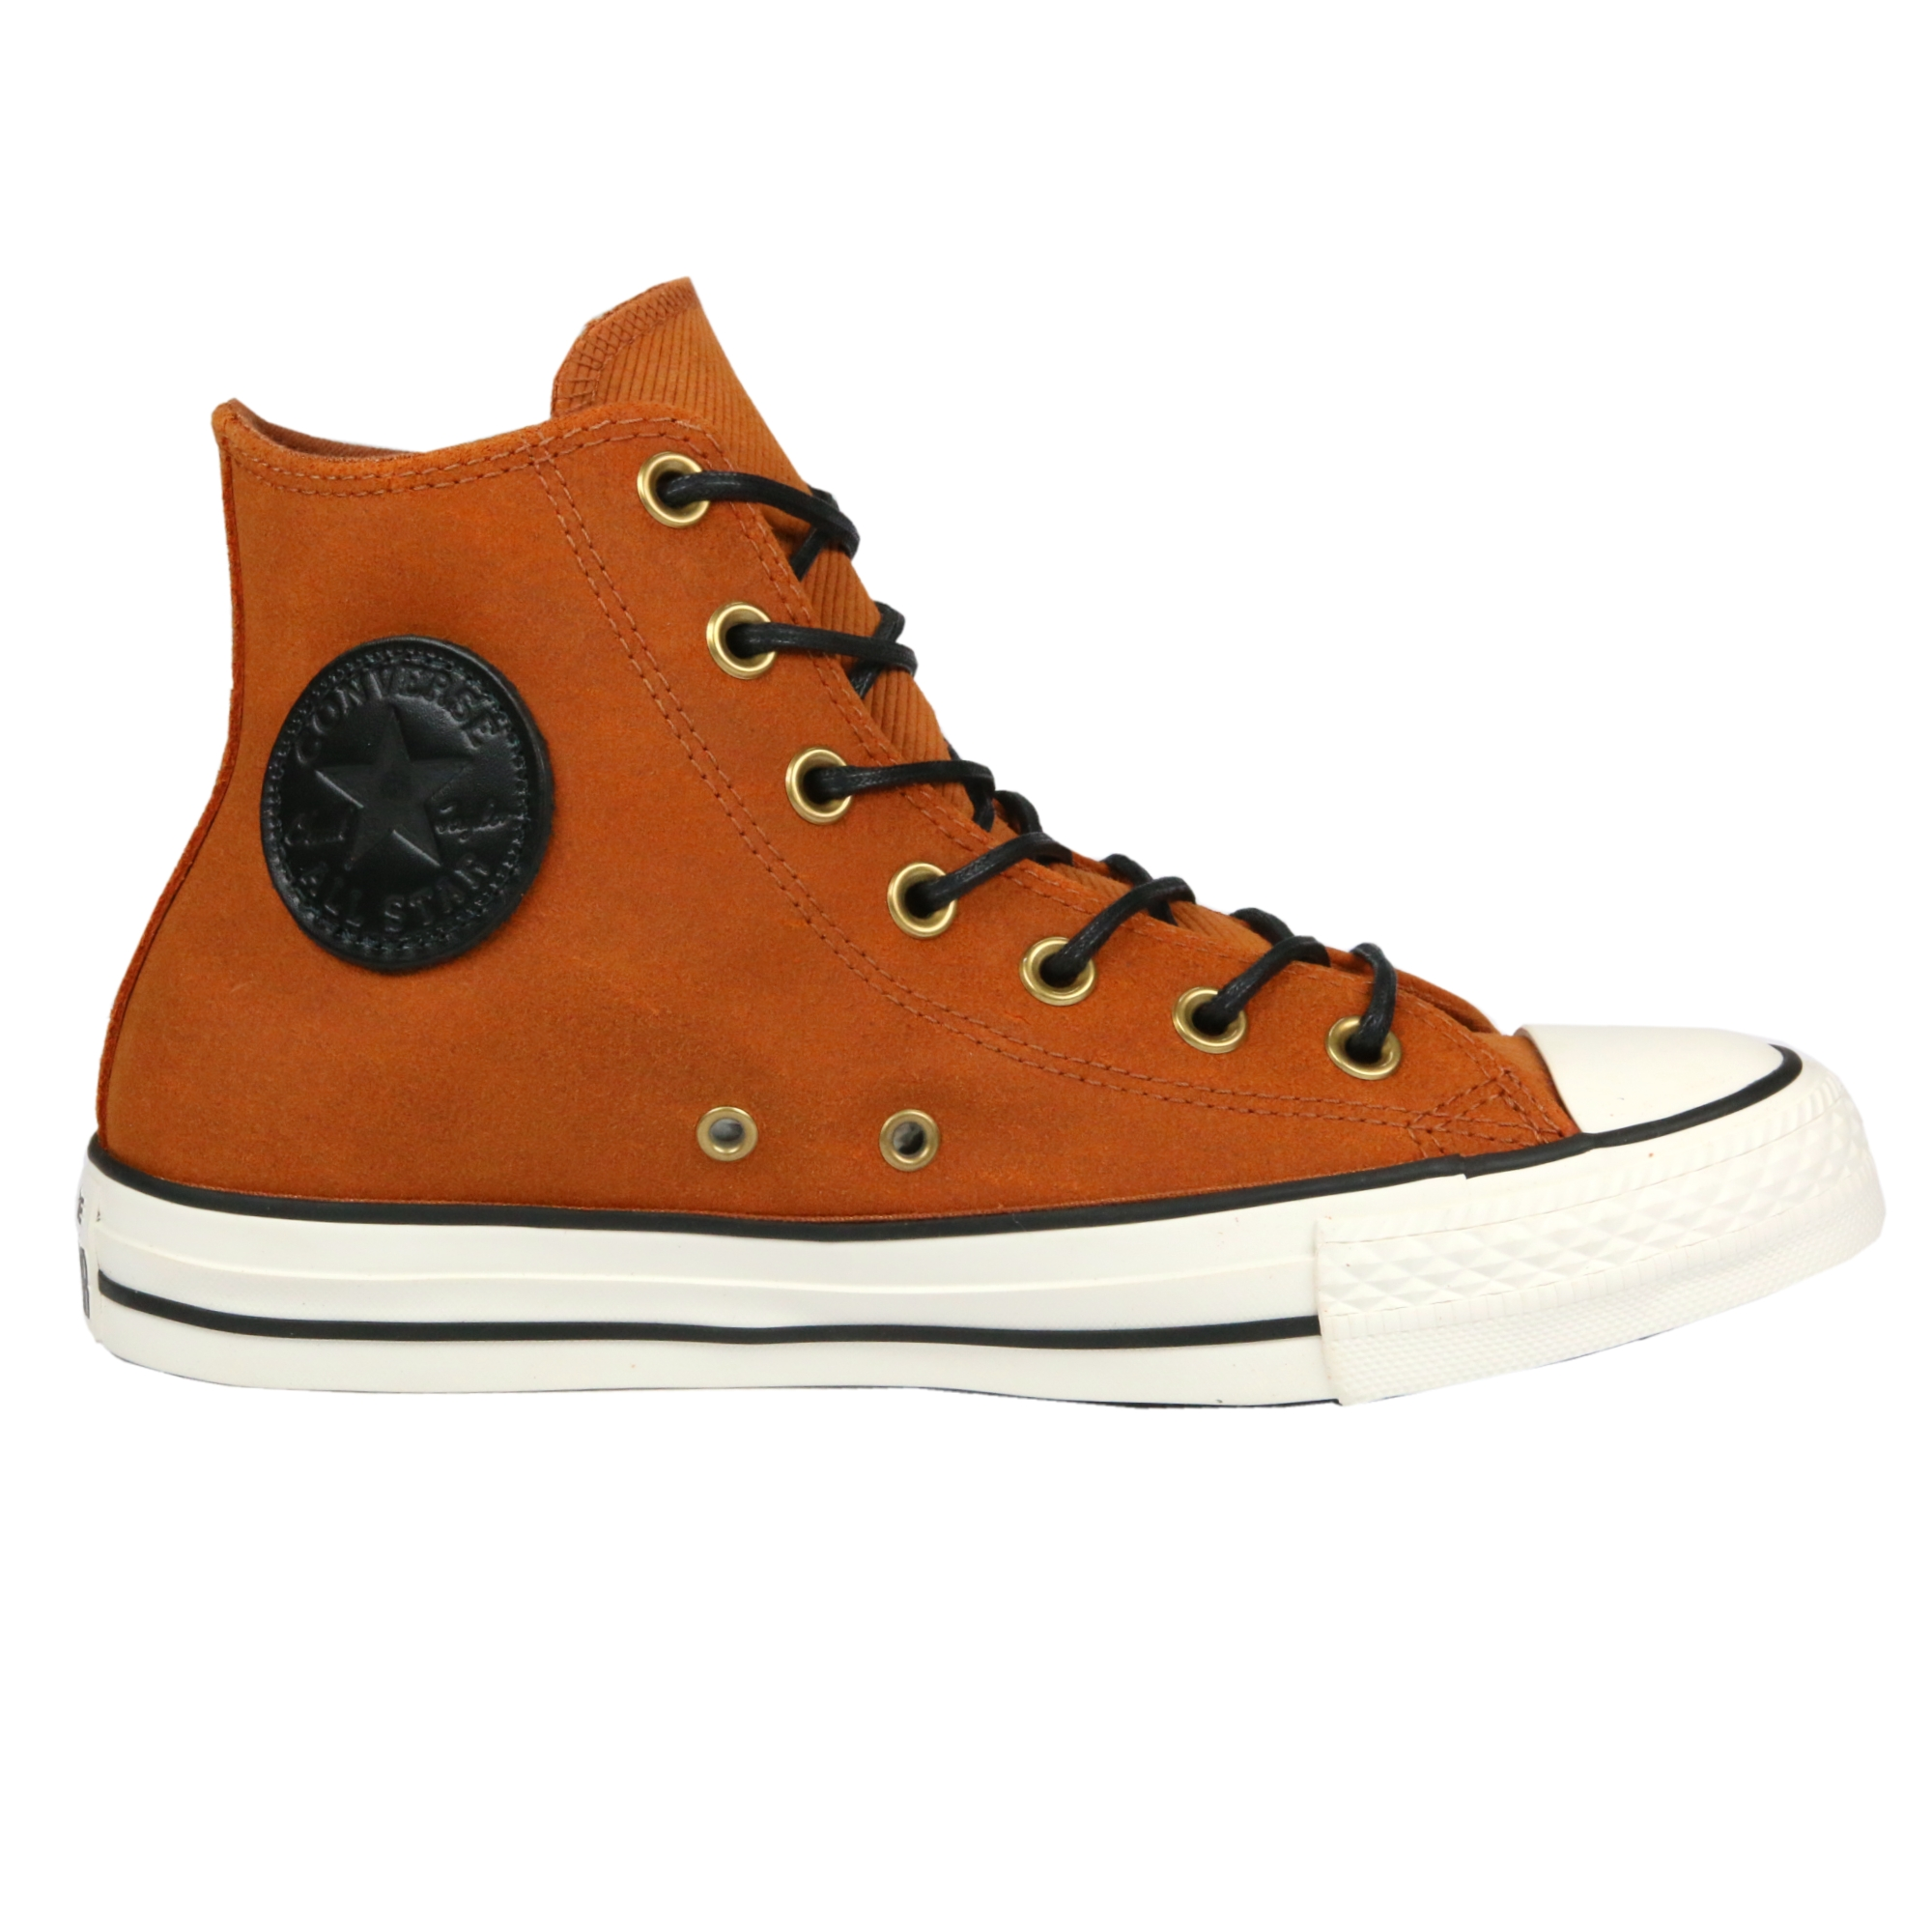 converse chuck taylor all star leather schuhe turnschuhe high top sneaker leder ebay. Black Bedroom Furniture Sets. Home Design Ideas